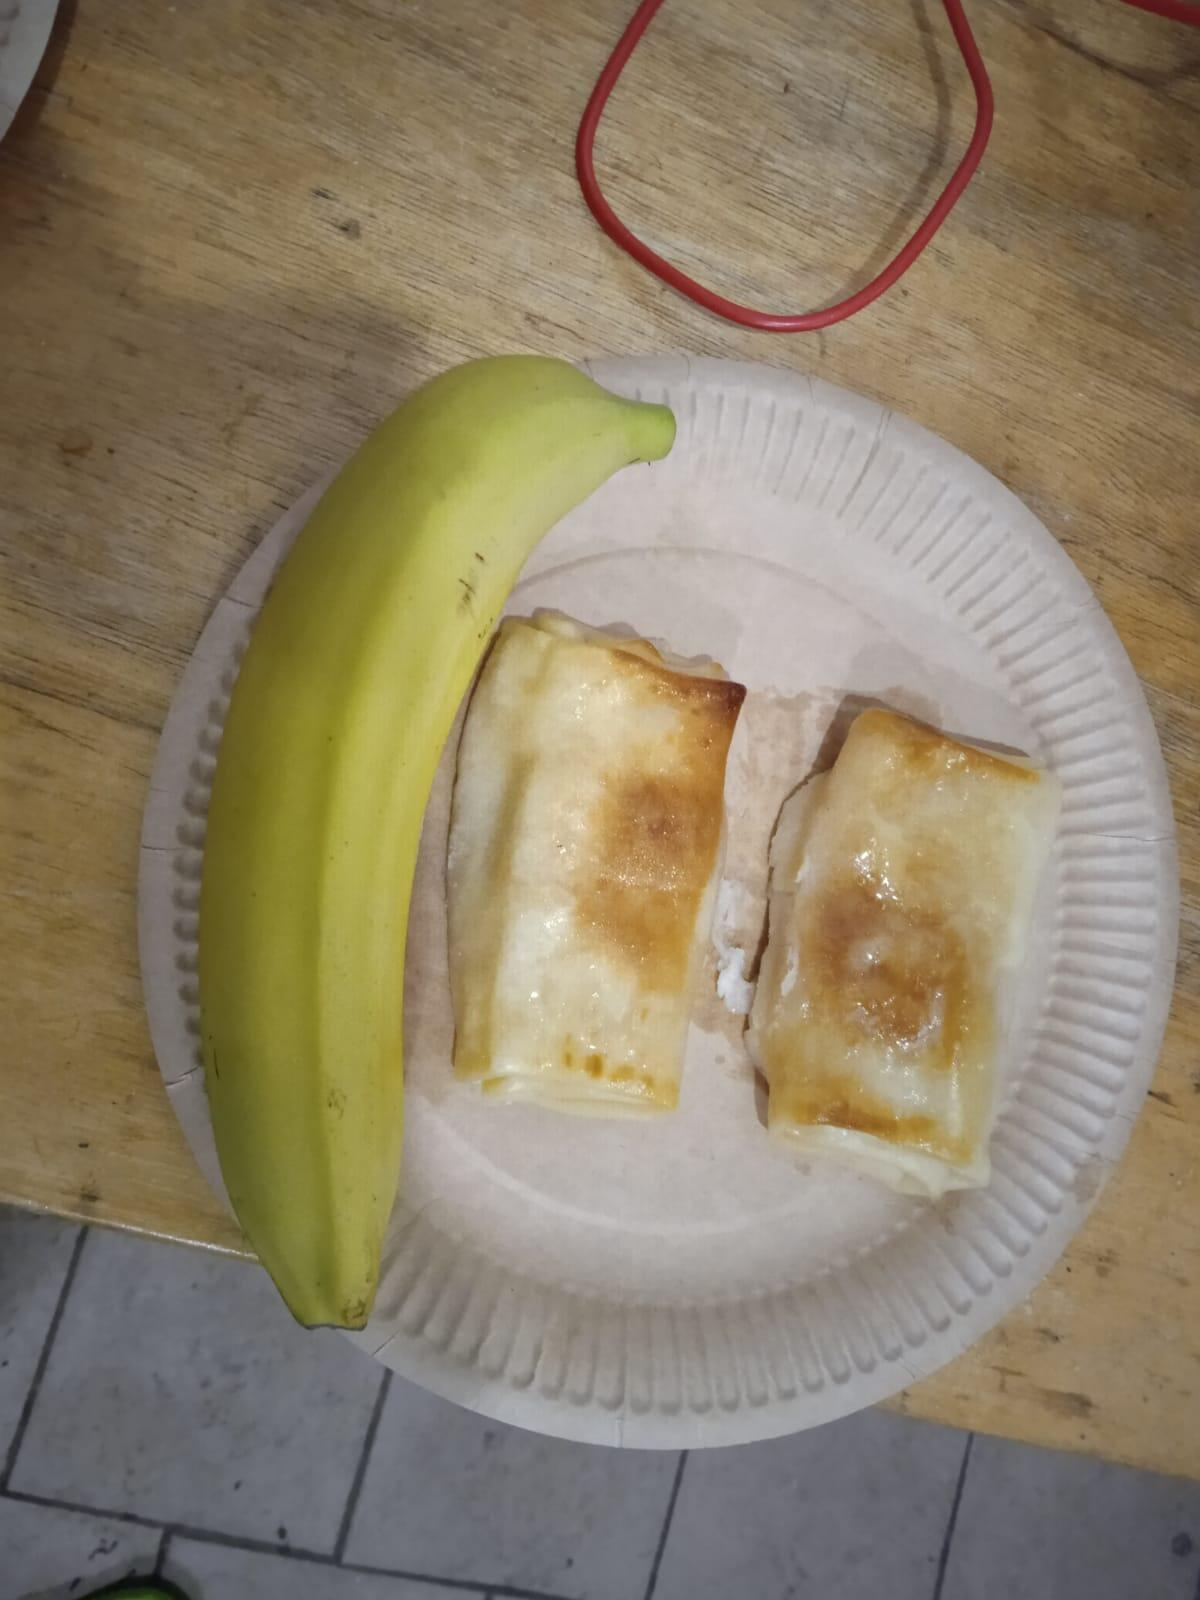 Photo of one of the meals served to migrants in the centre in Linkmenys. Sent by our Observer in September 2021.